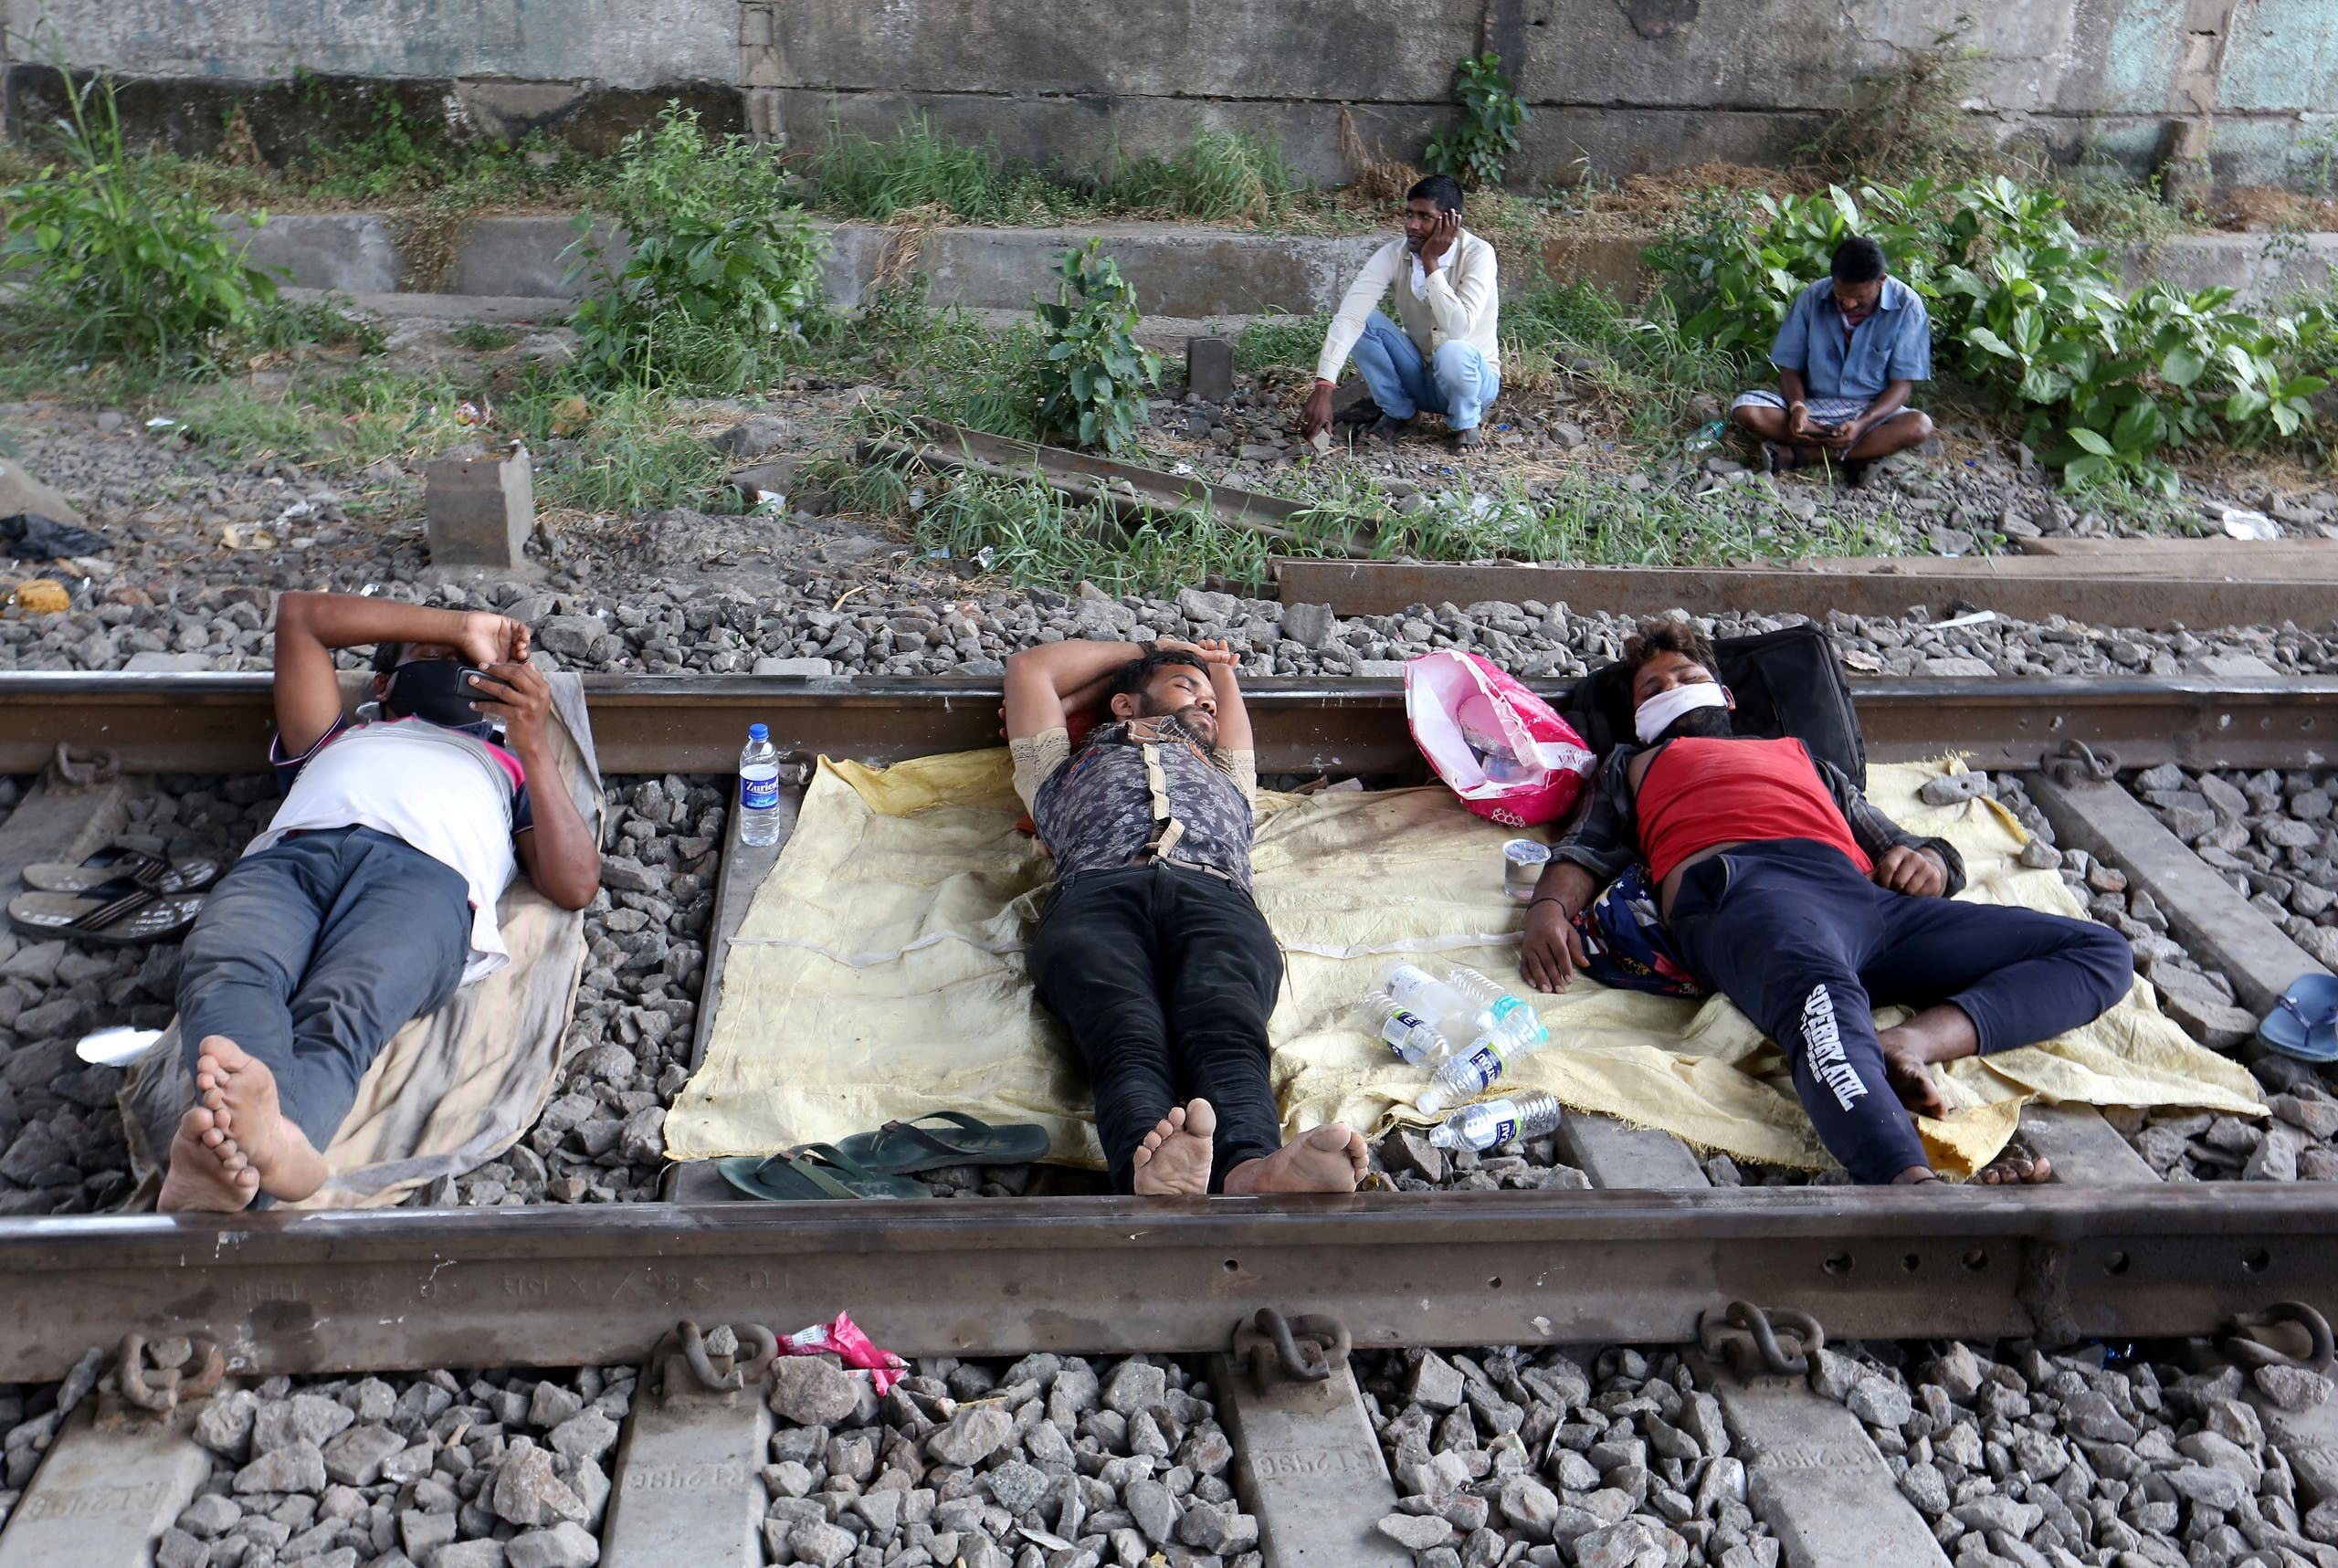 Migrant workers rest on a railway track during a 21-day nationwide lockdown to slow the spreading of coronavirus disease (COVID-19) in in Mumbai, India, on April 2, 2020. (Reuters)